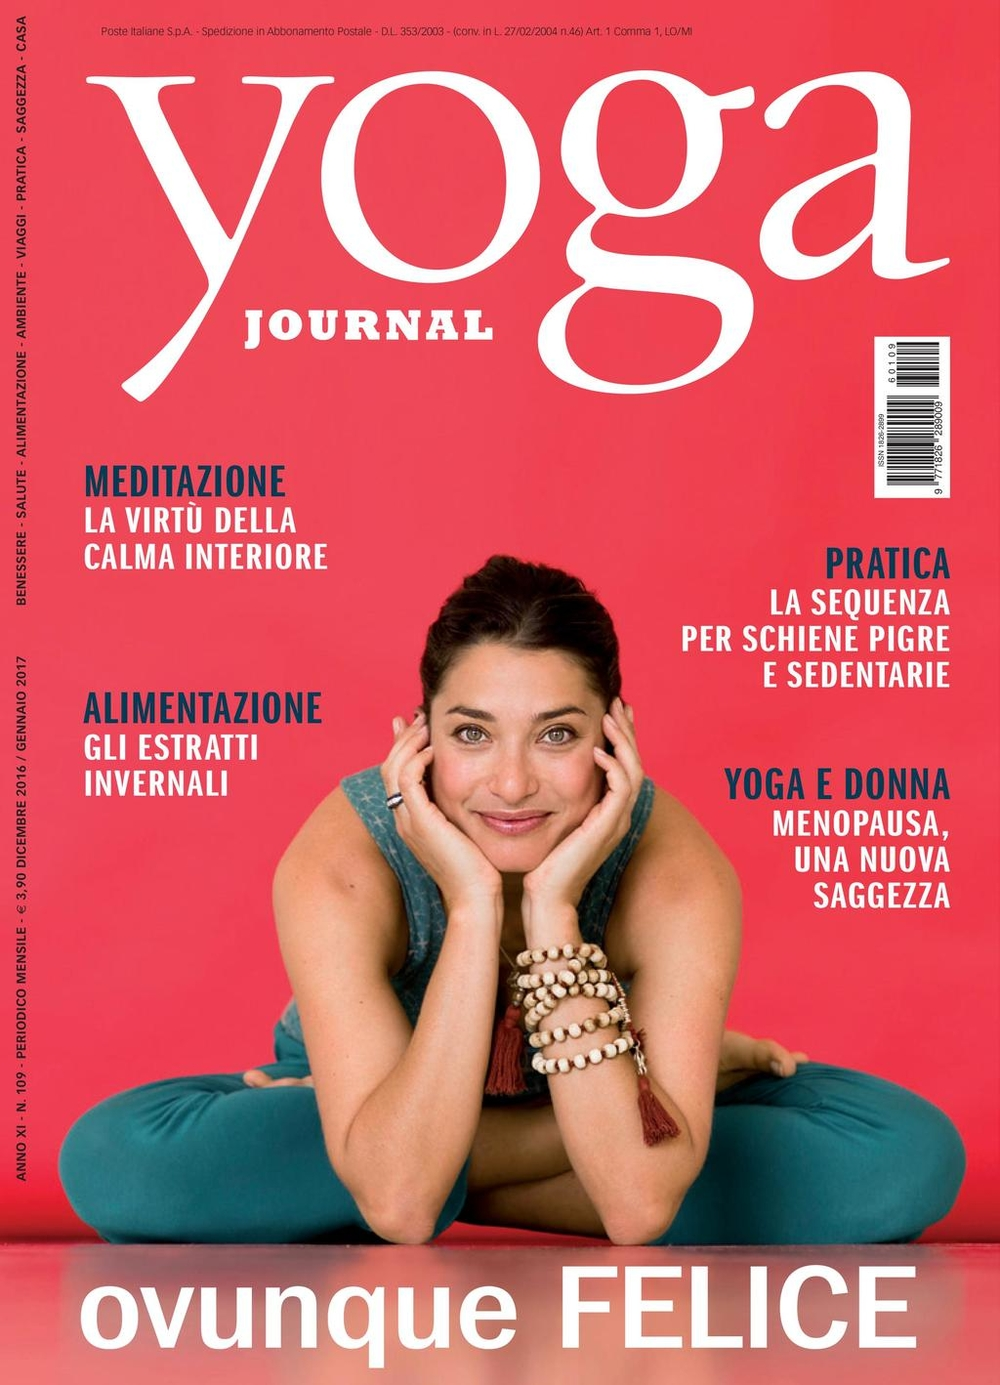 Yoga Journal n. 109